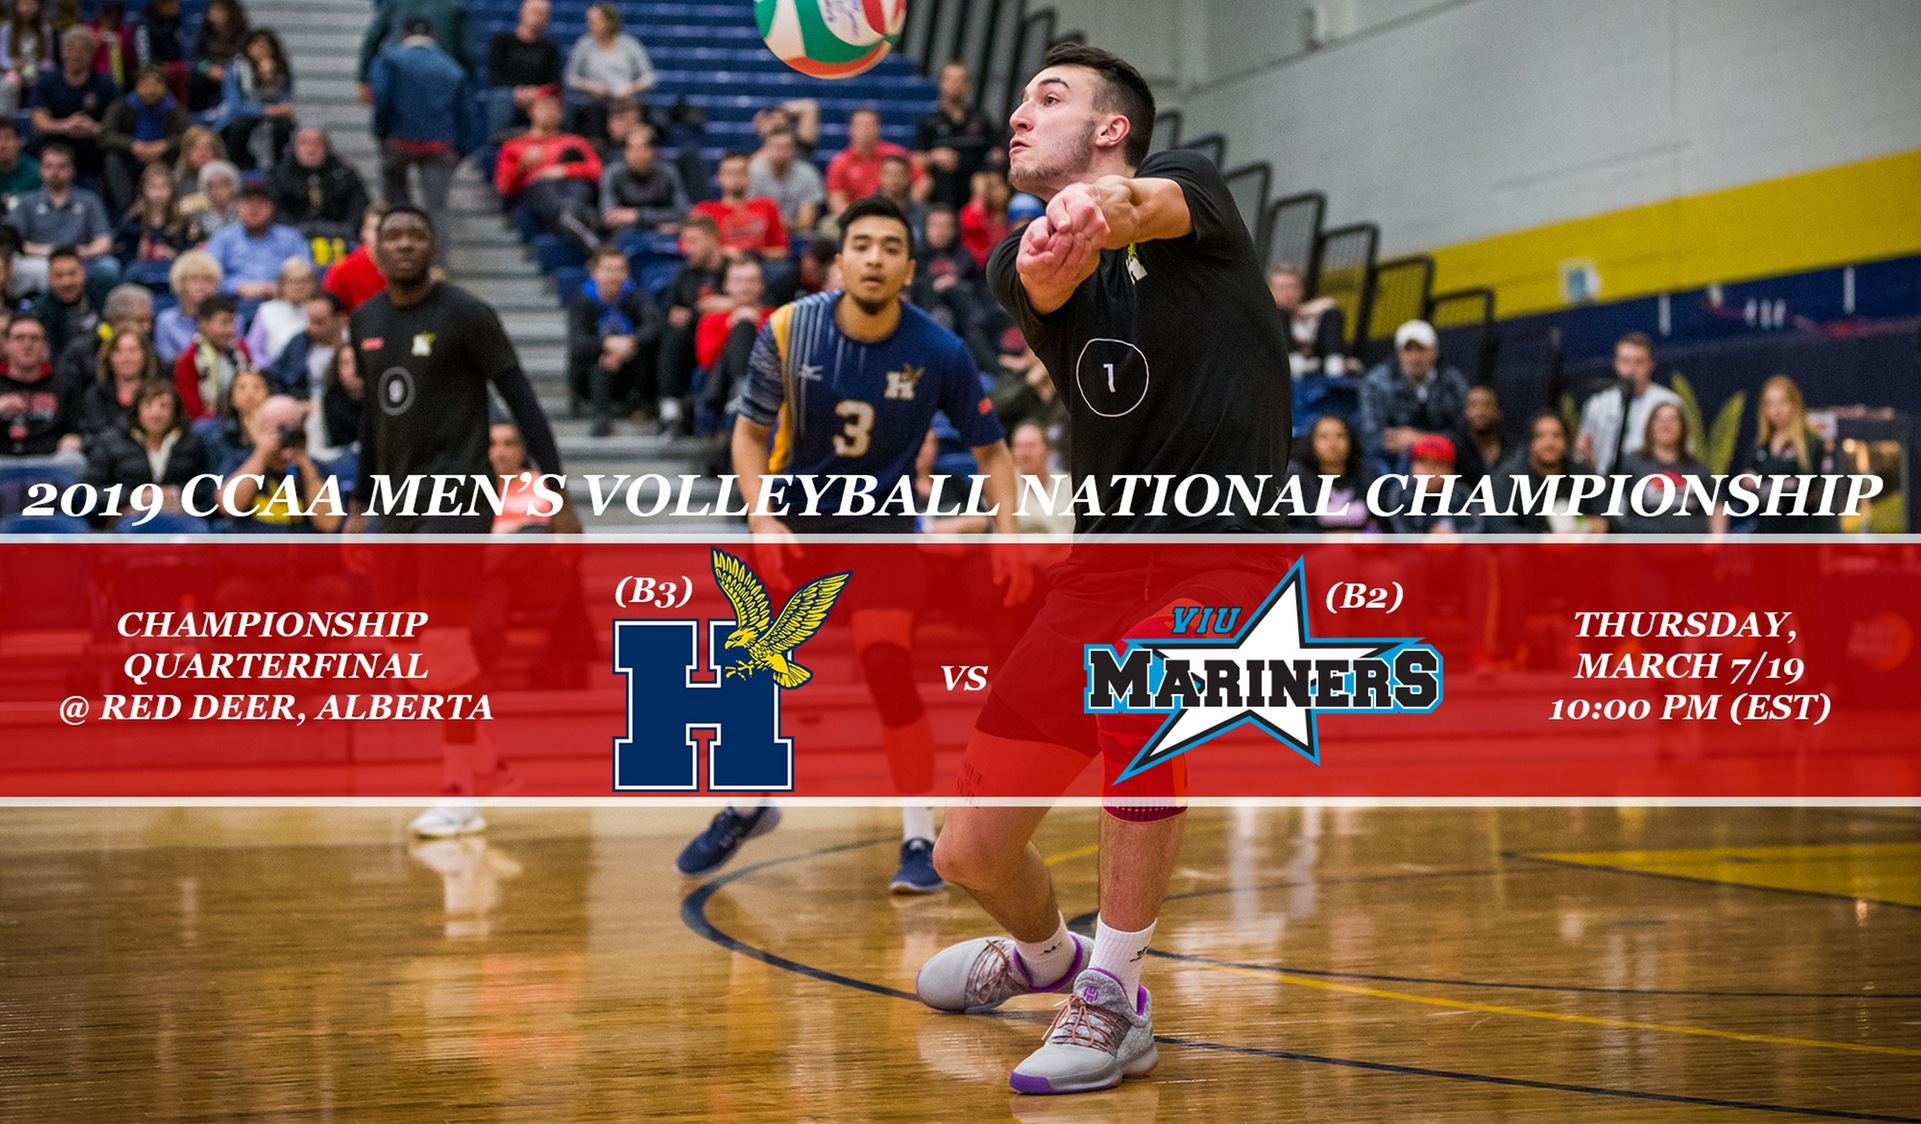 HAWKS OPEN QUEST FOR 2019 CCAA NATIONAL TITLE ON MARCH 7 VS VIU